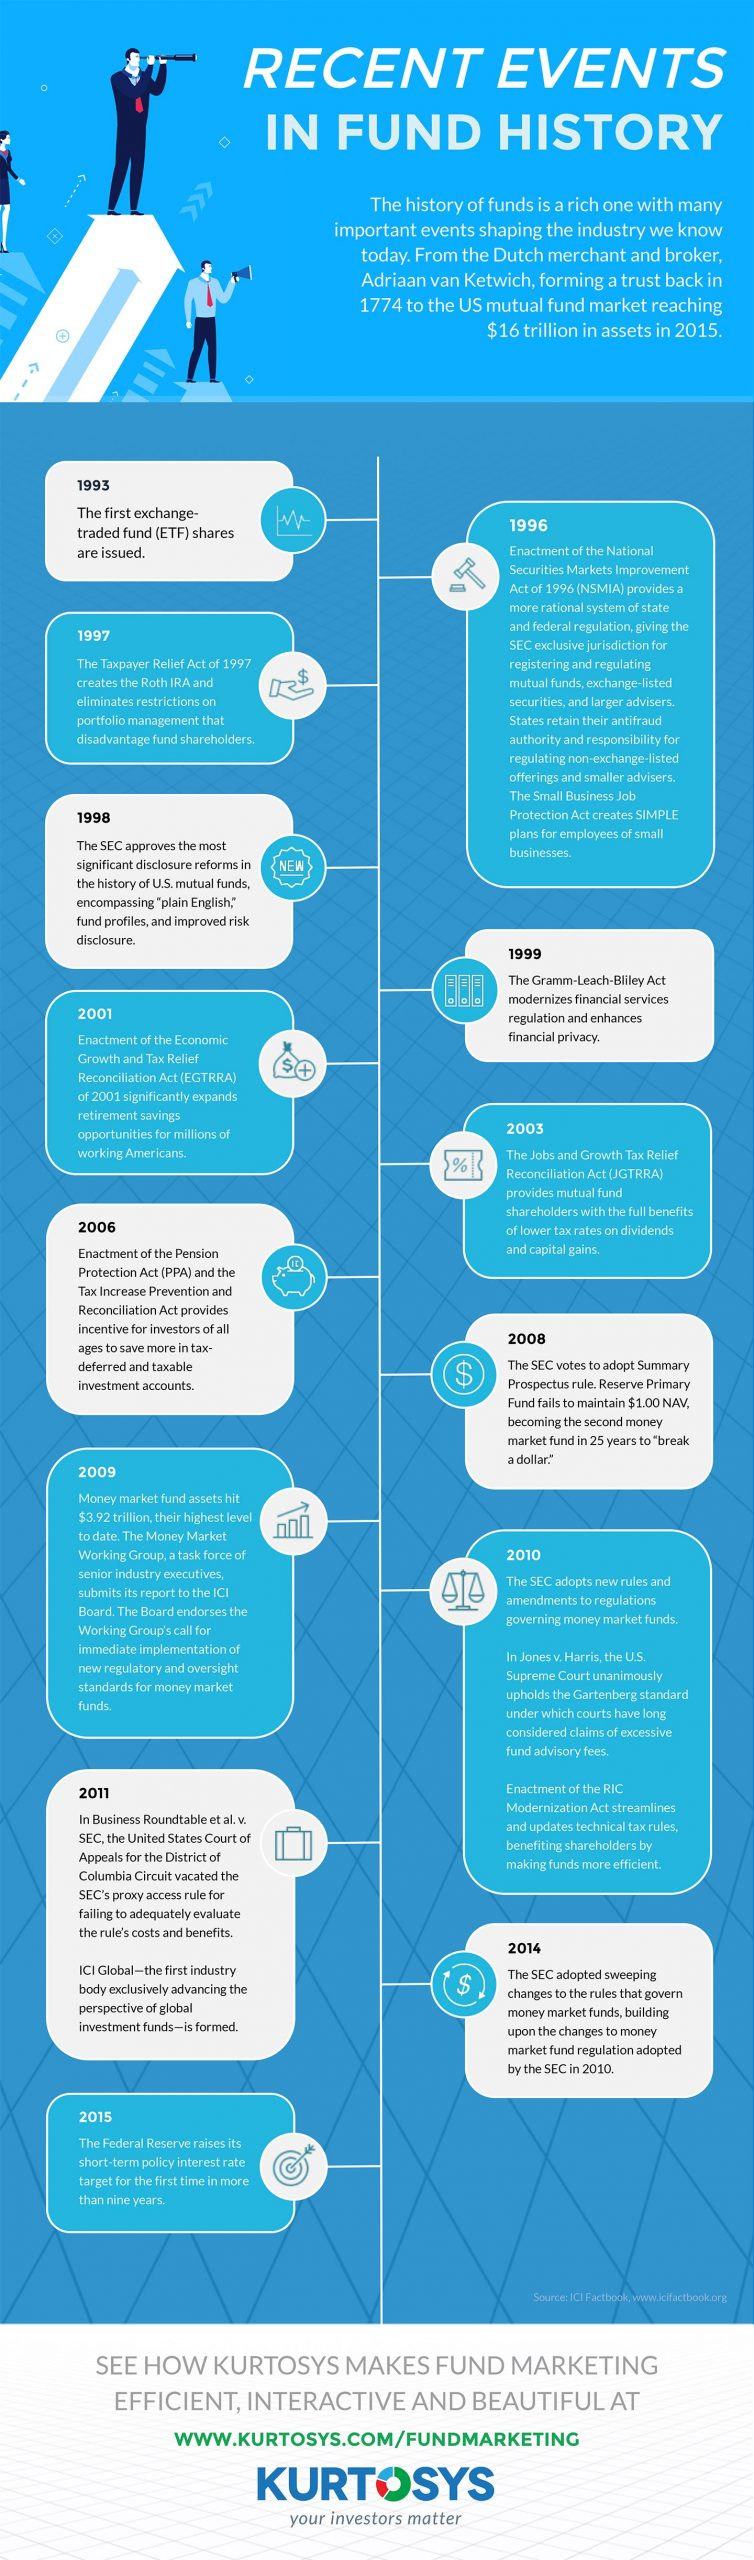 Recent Events in Fund History [INFOGRAPHIC] 1